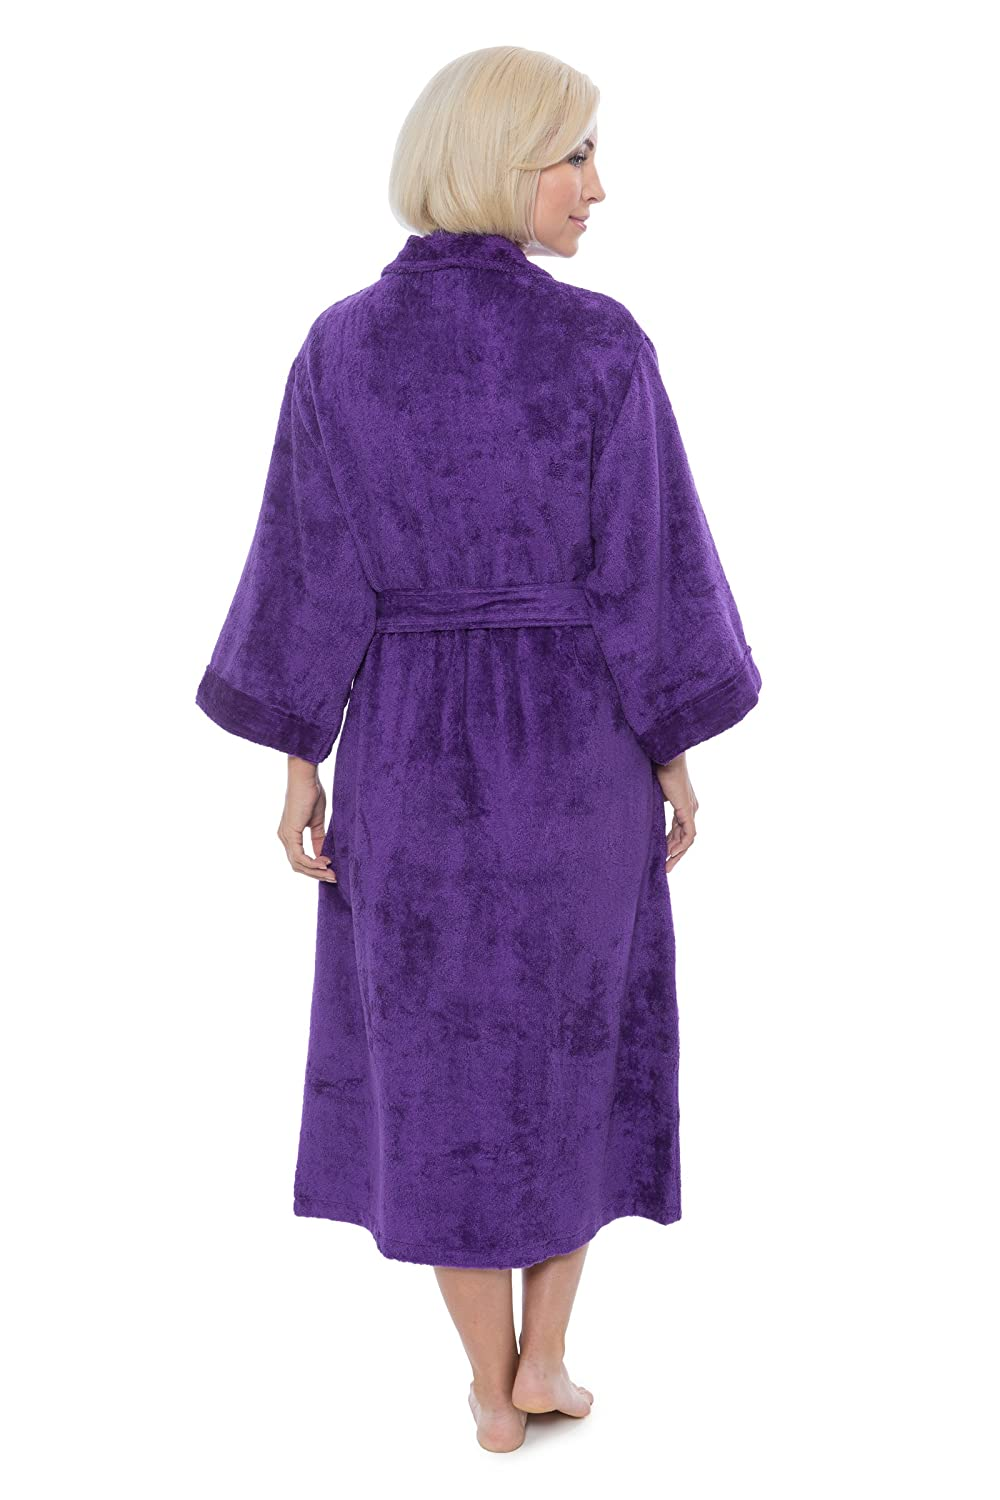 9e97a27206482 Women's Terry Cloth Bath Robe - Luxury Comfy Robes by Texere (Sitkimono) at Amazon  Women's Clothing store: